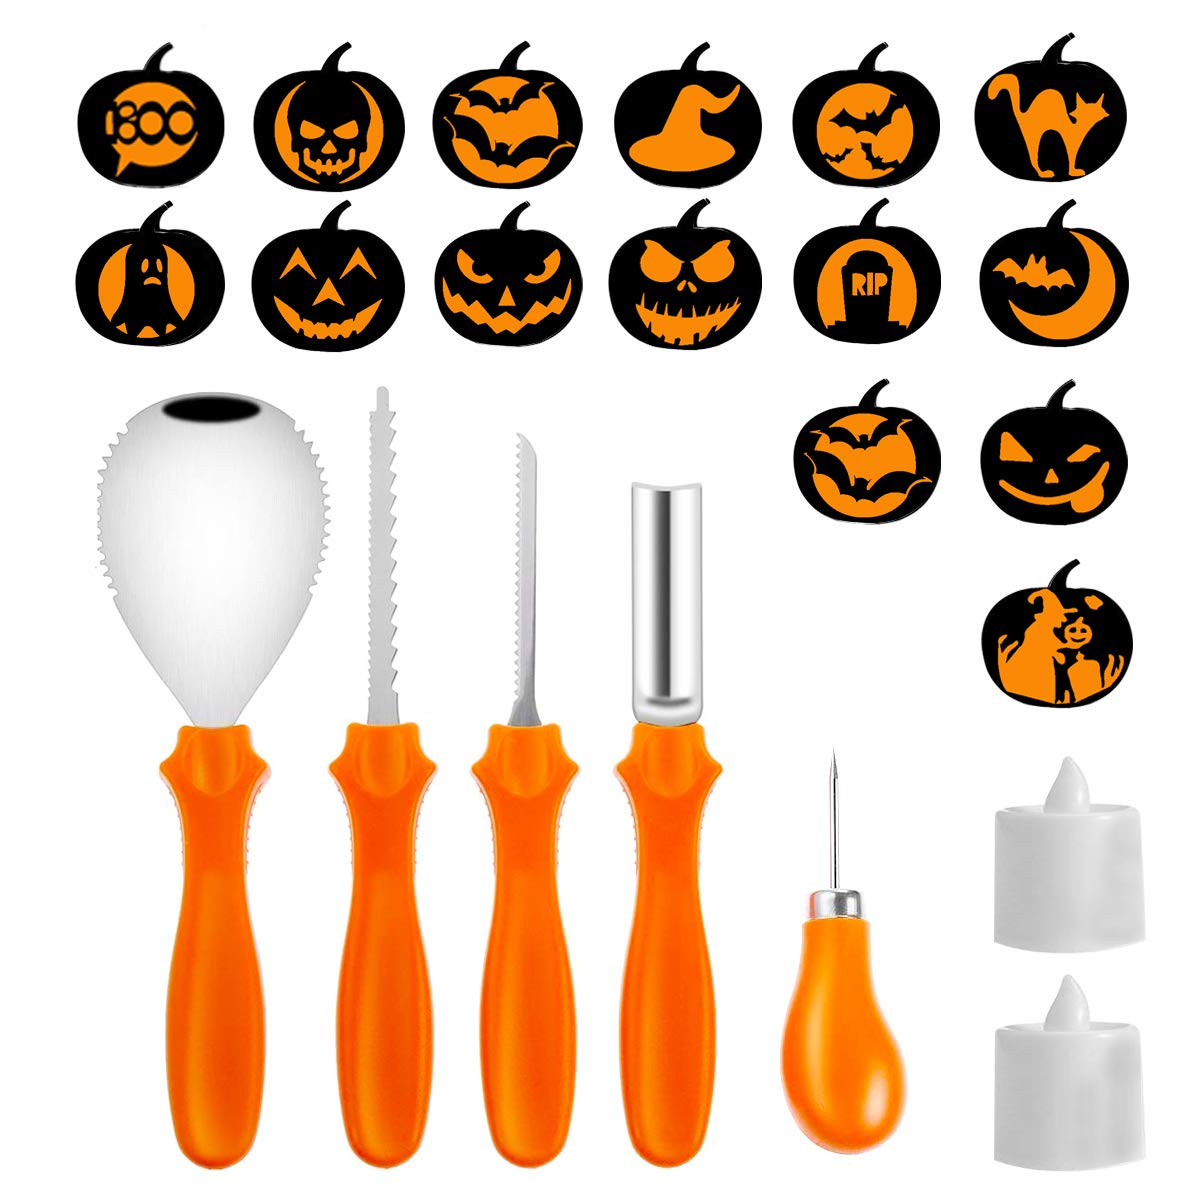 Pumpkin Carving Tools Kit,5 Piece Heavy Duty Stainless Steel Carving Tools and 15 Pieces Halloween Pumpkin Carved Stickers 2 colorful changing candles as gifts